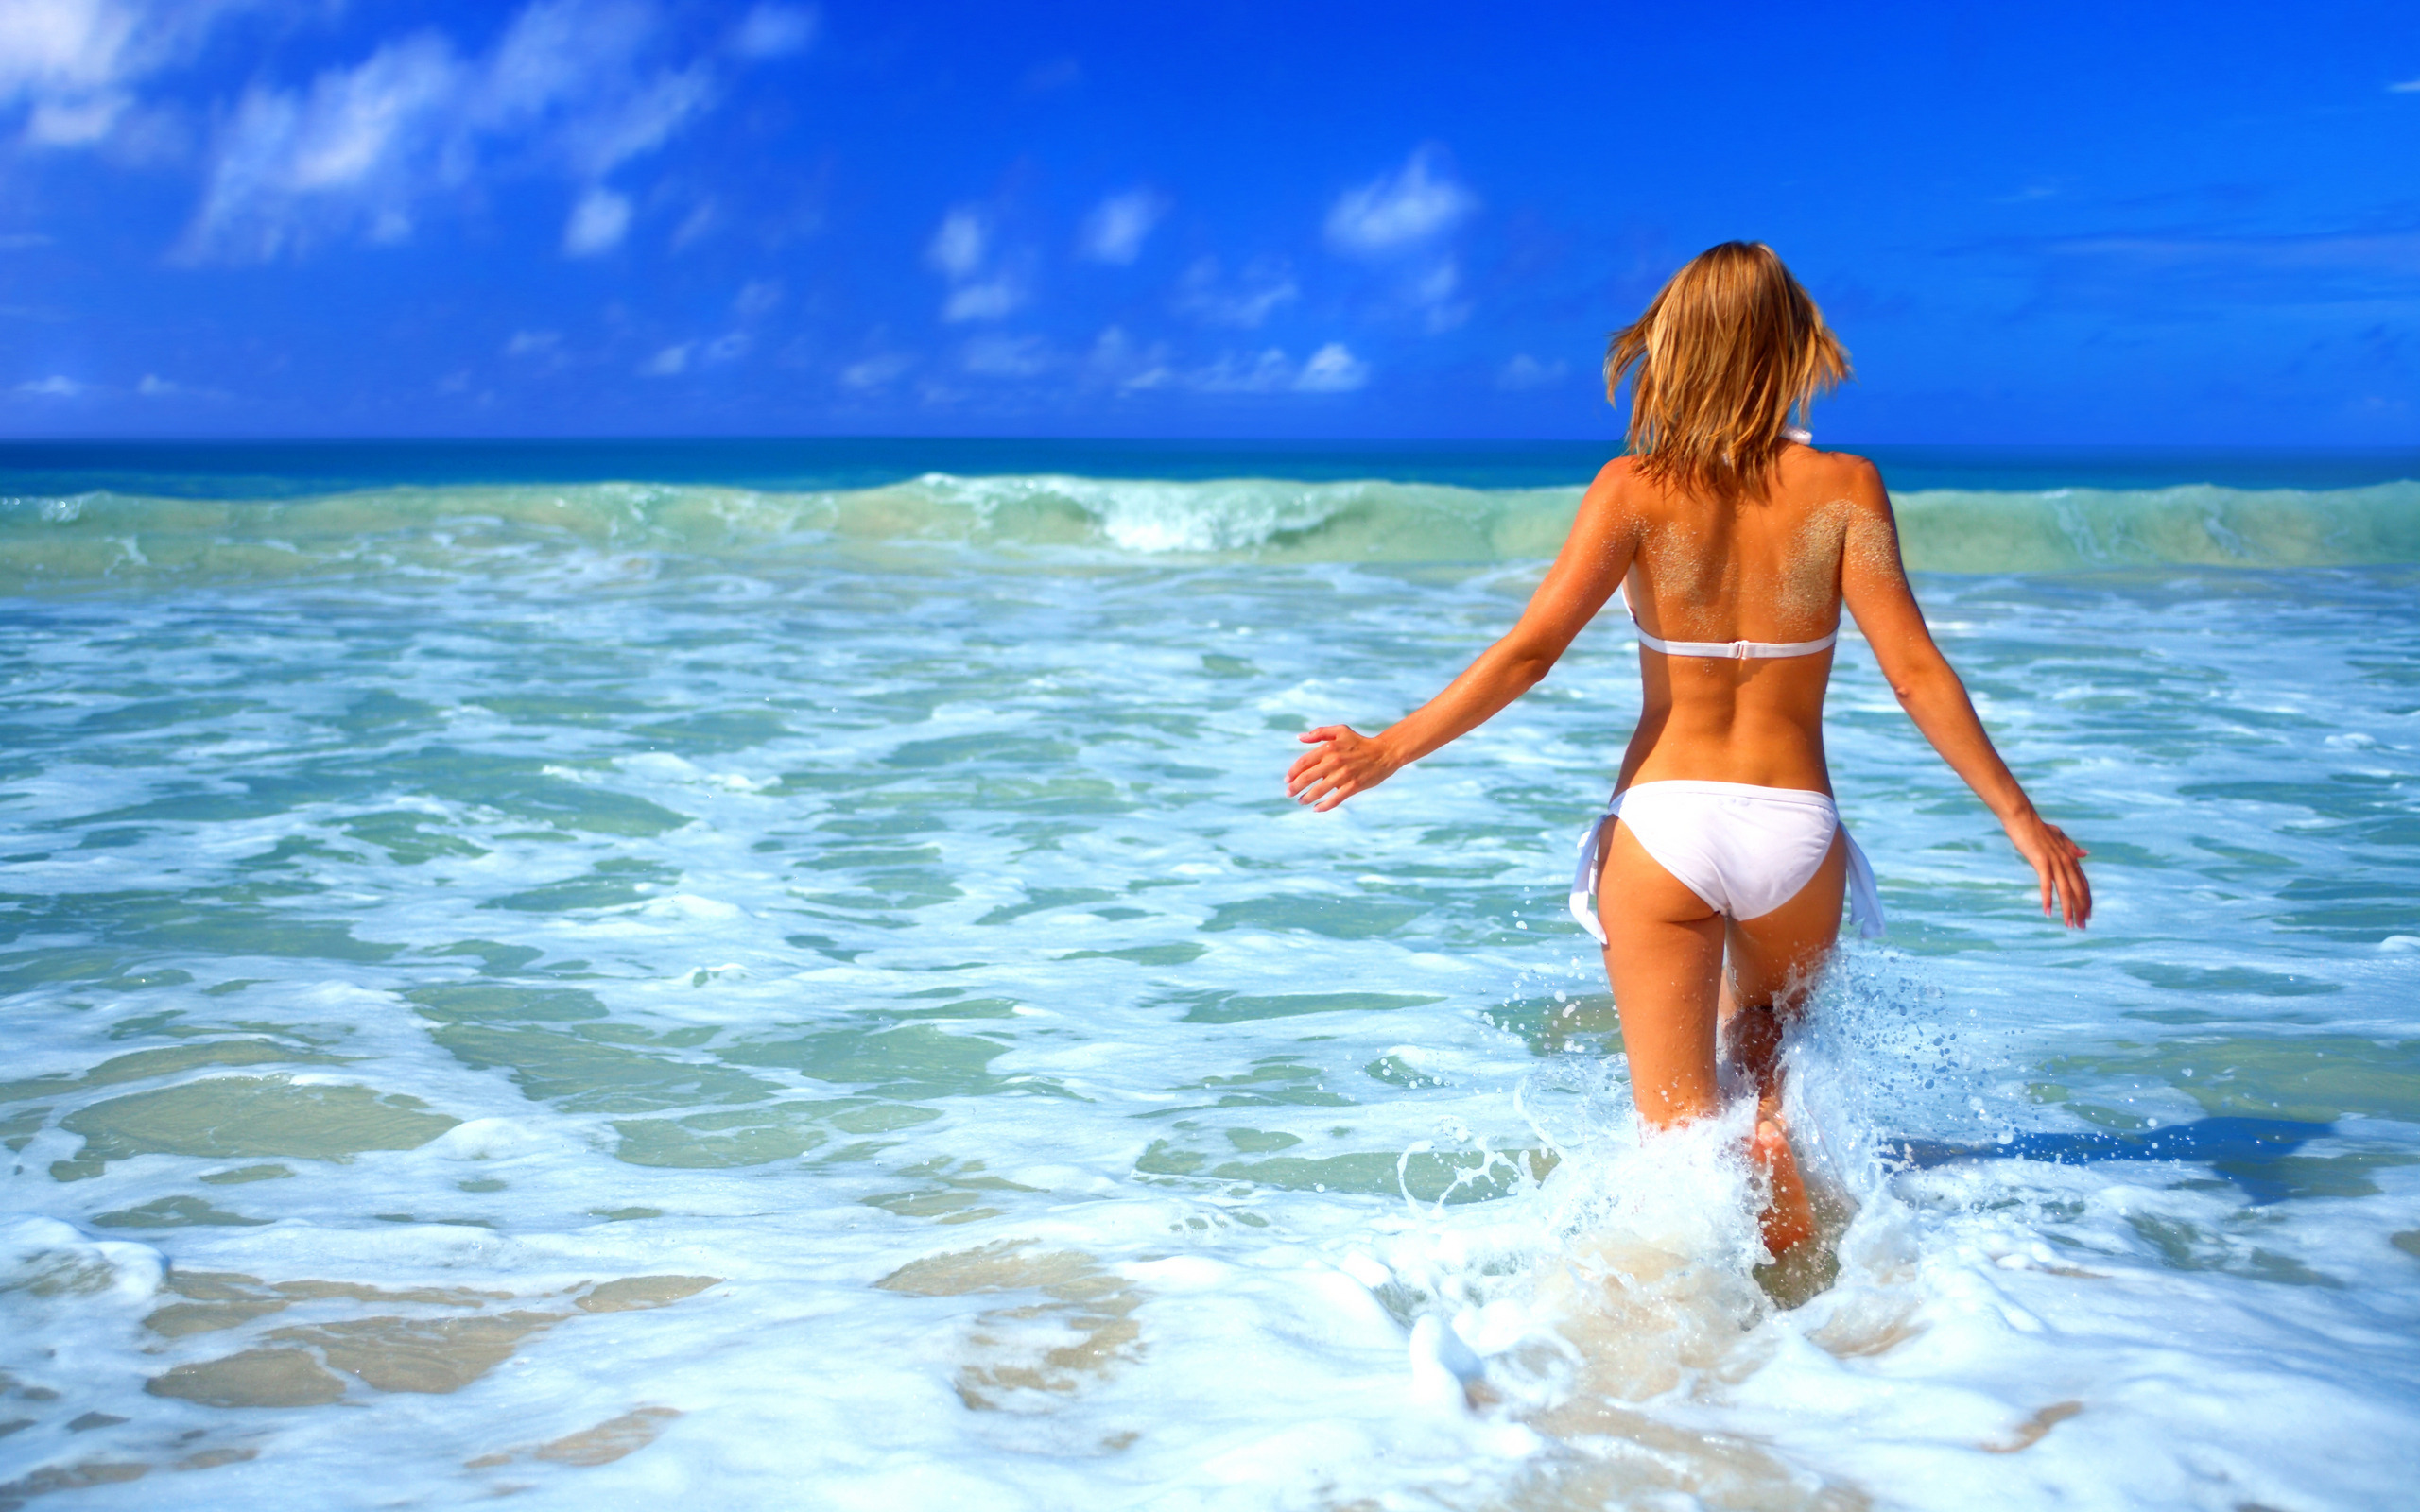 Hot blond chicks gets banged hard on the white sand of a tropical island beach № 773576 загрузить